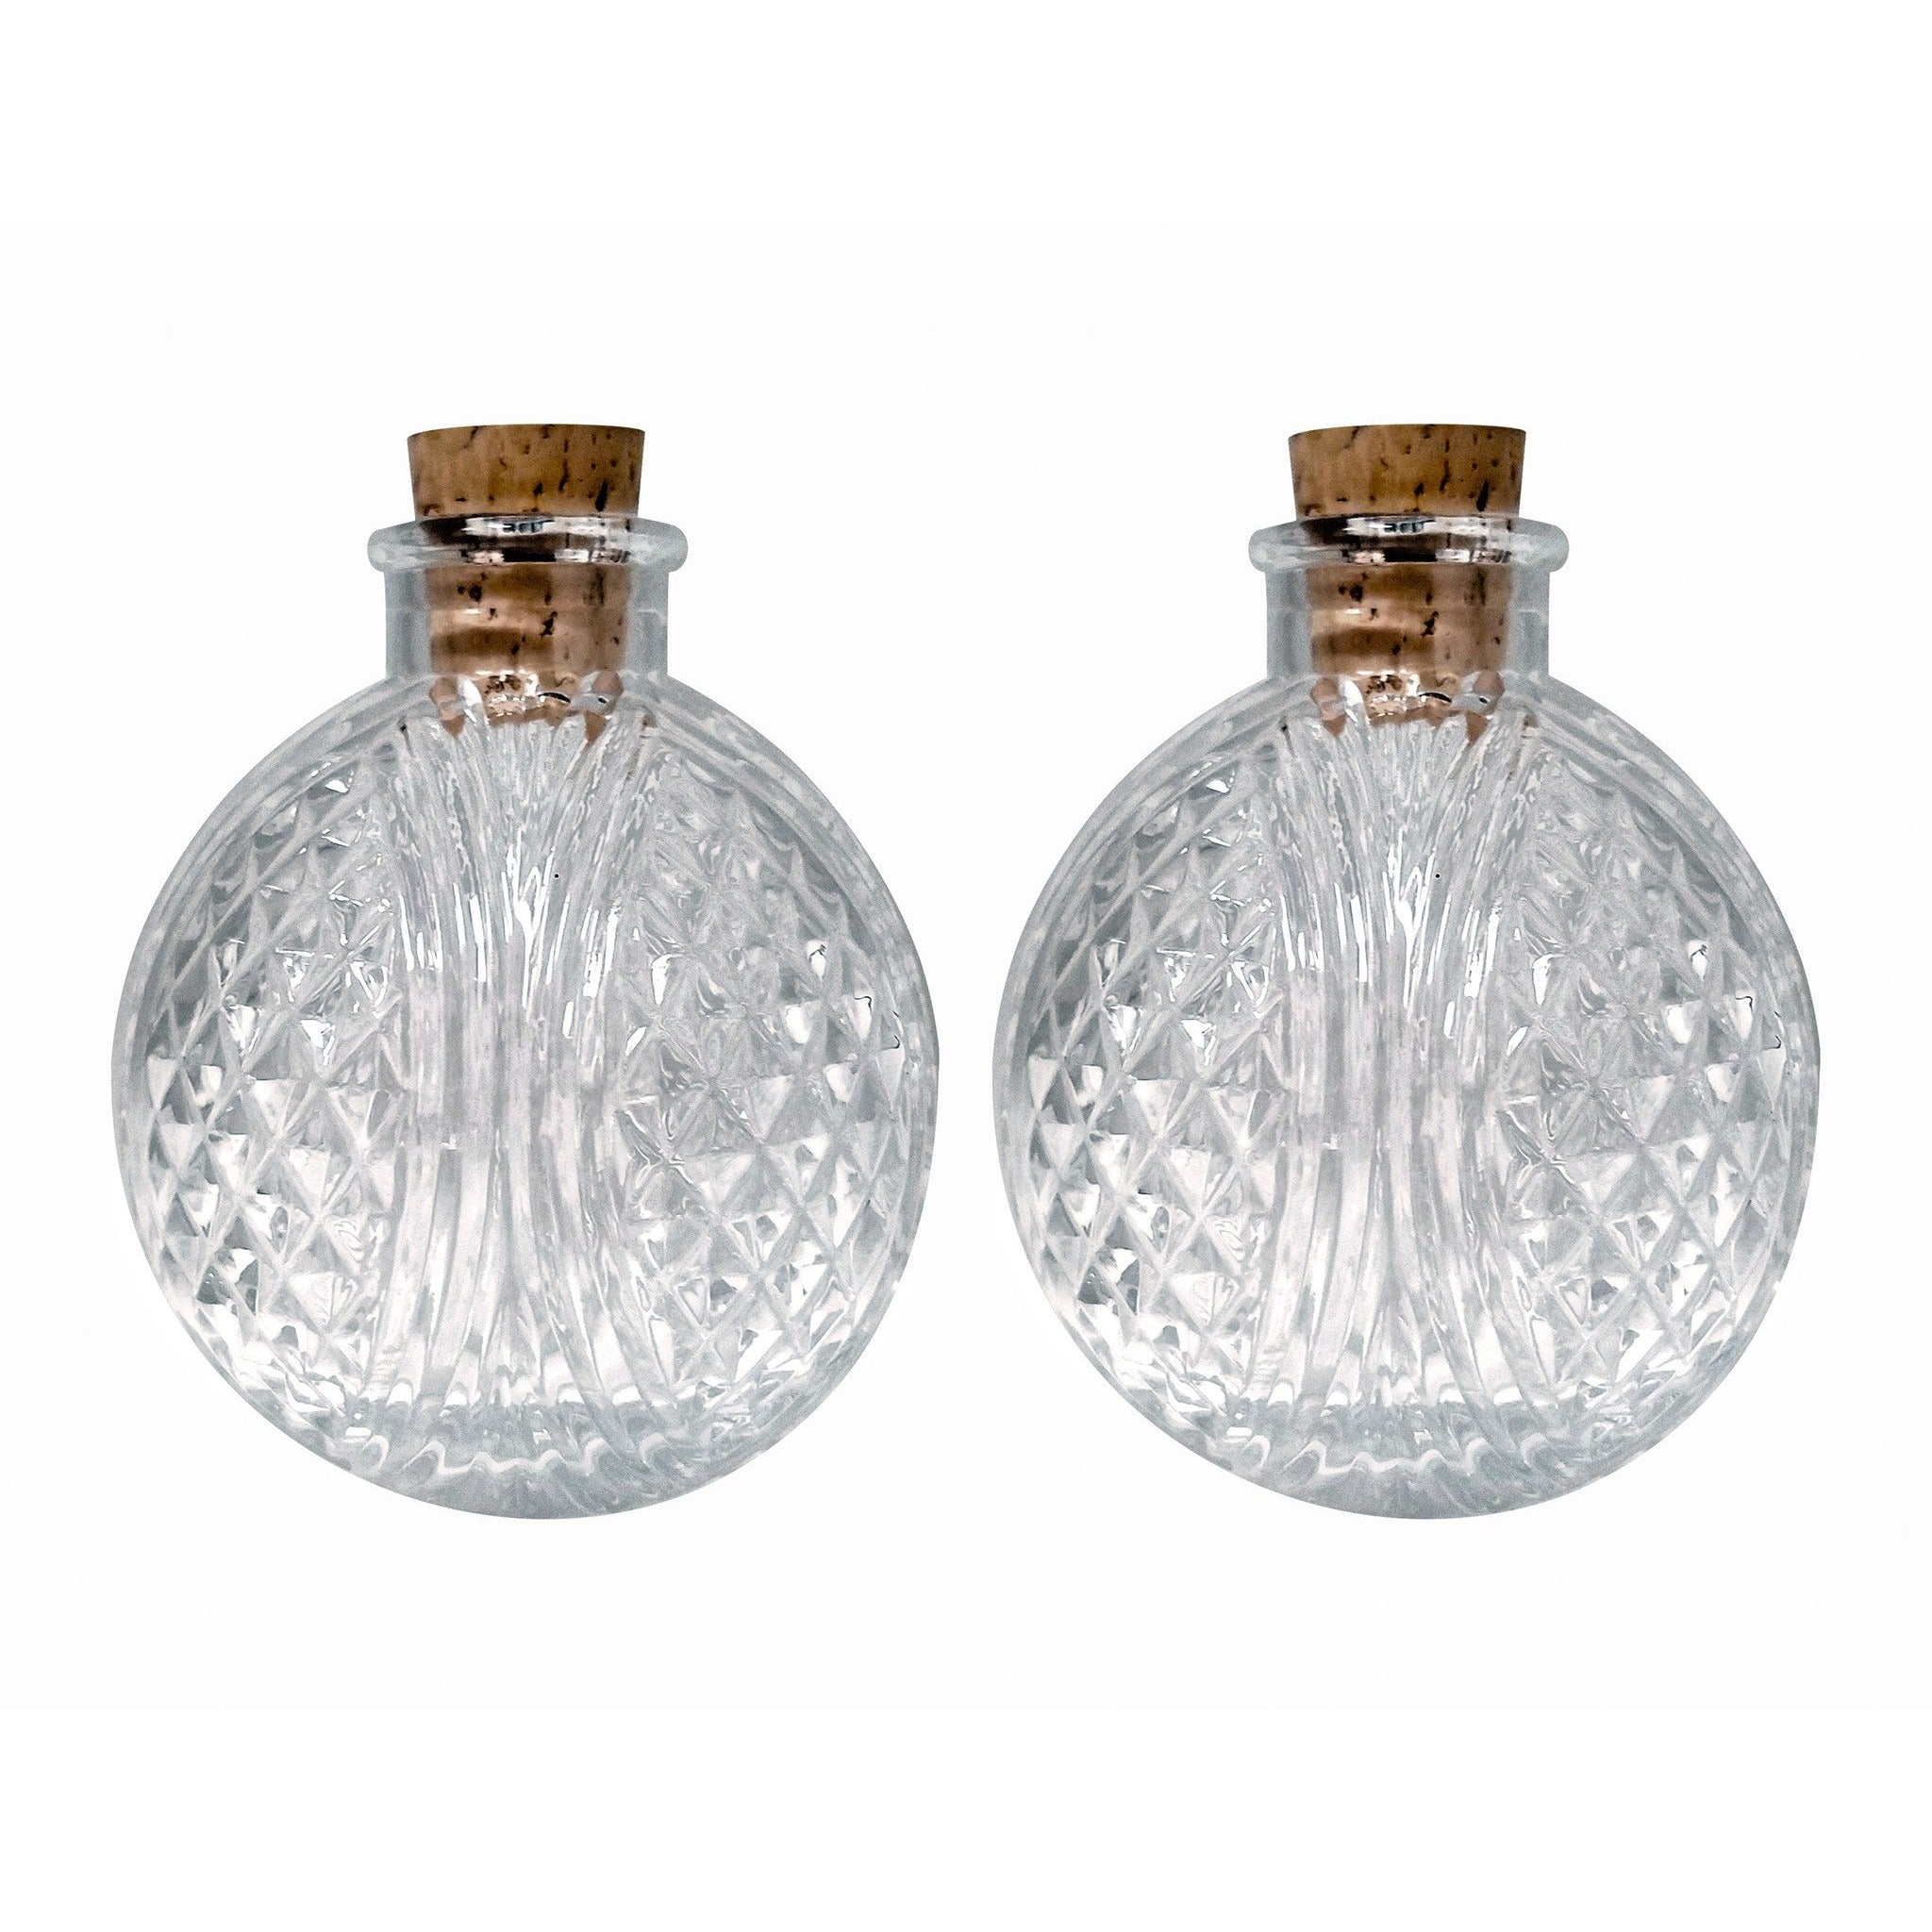 6oz Round Glass Bottle With Cork Set Of Two Round Clear Cut Glass